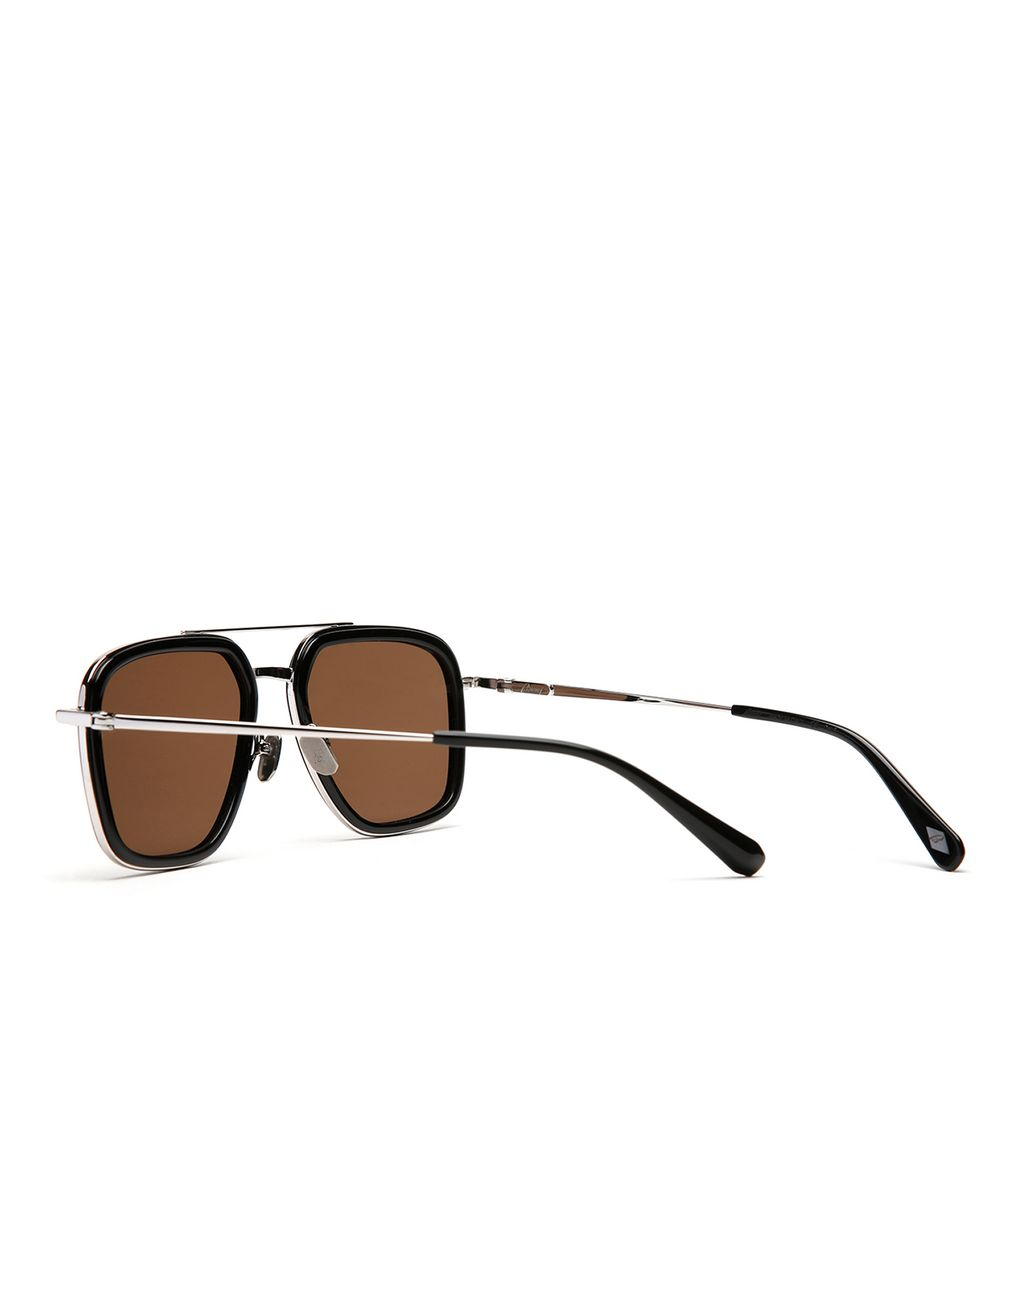 BRIONI Black Geometric Shape Sunglasses with Brown Lenses  Sunglasses Man d